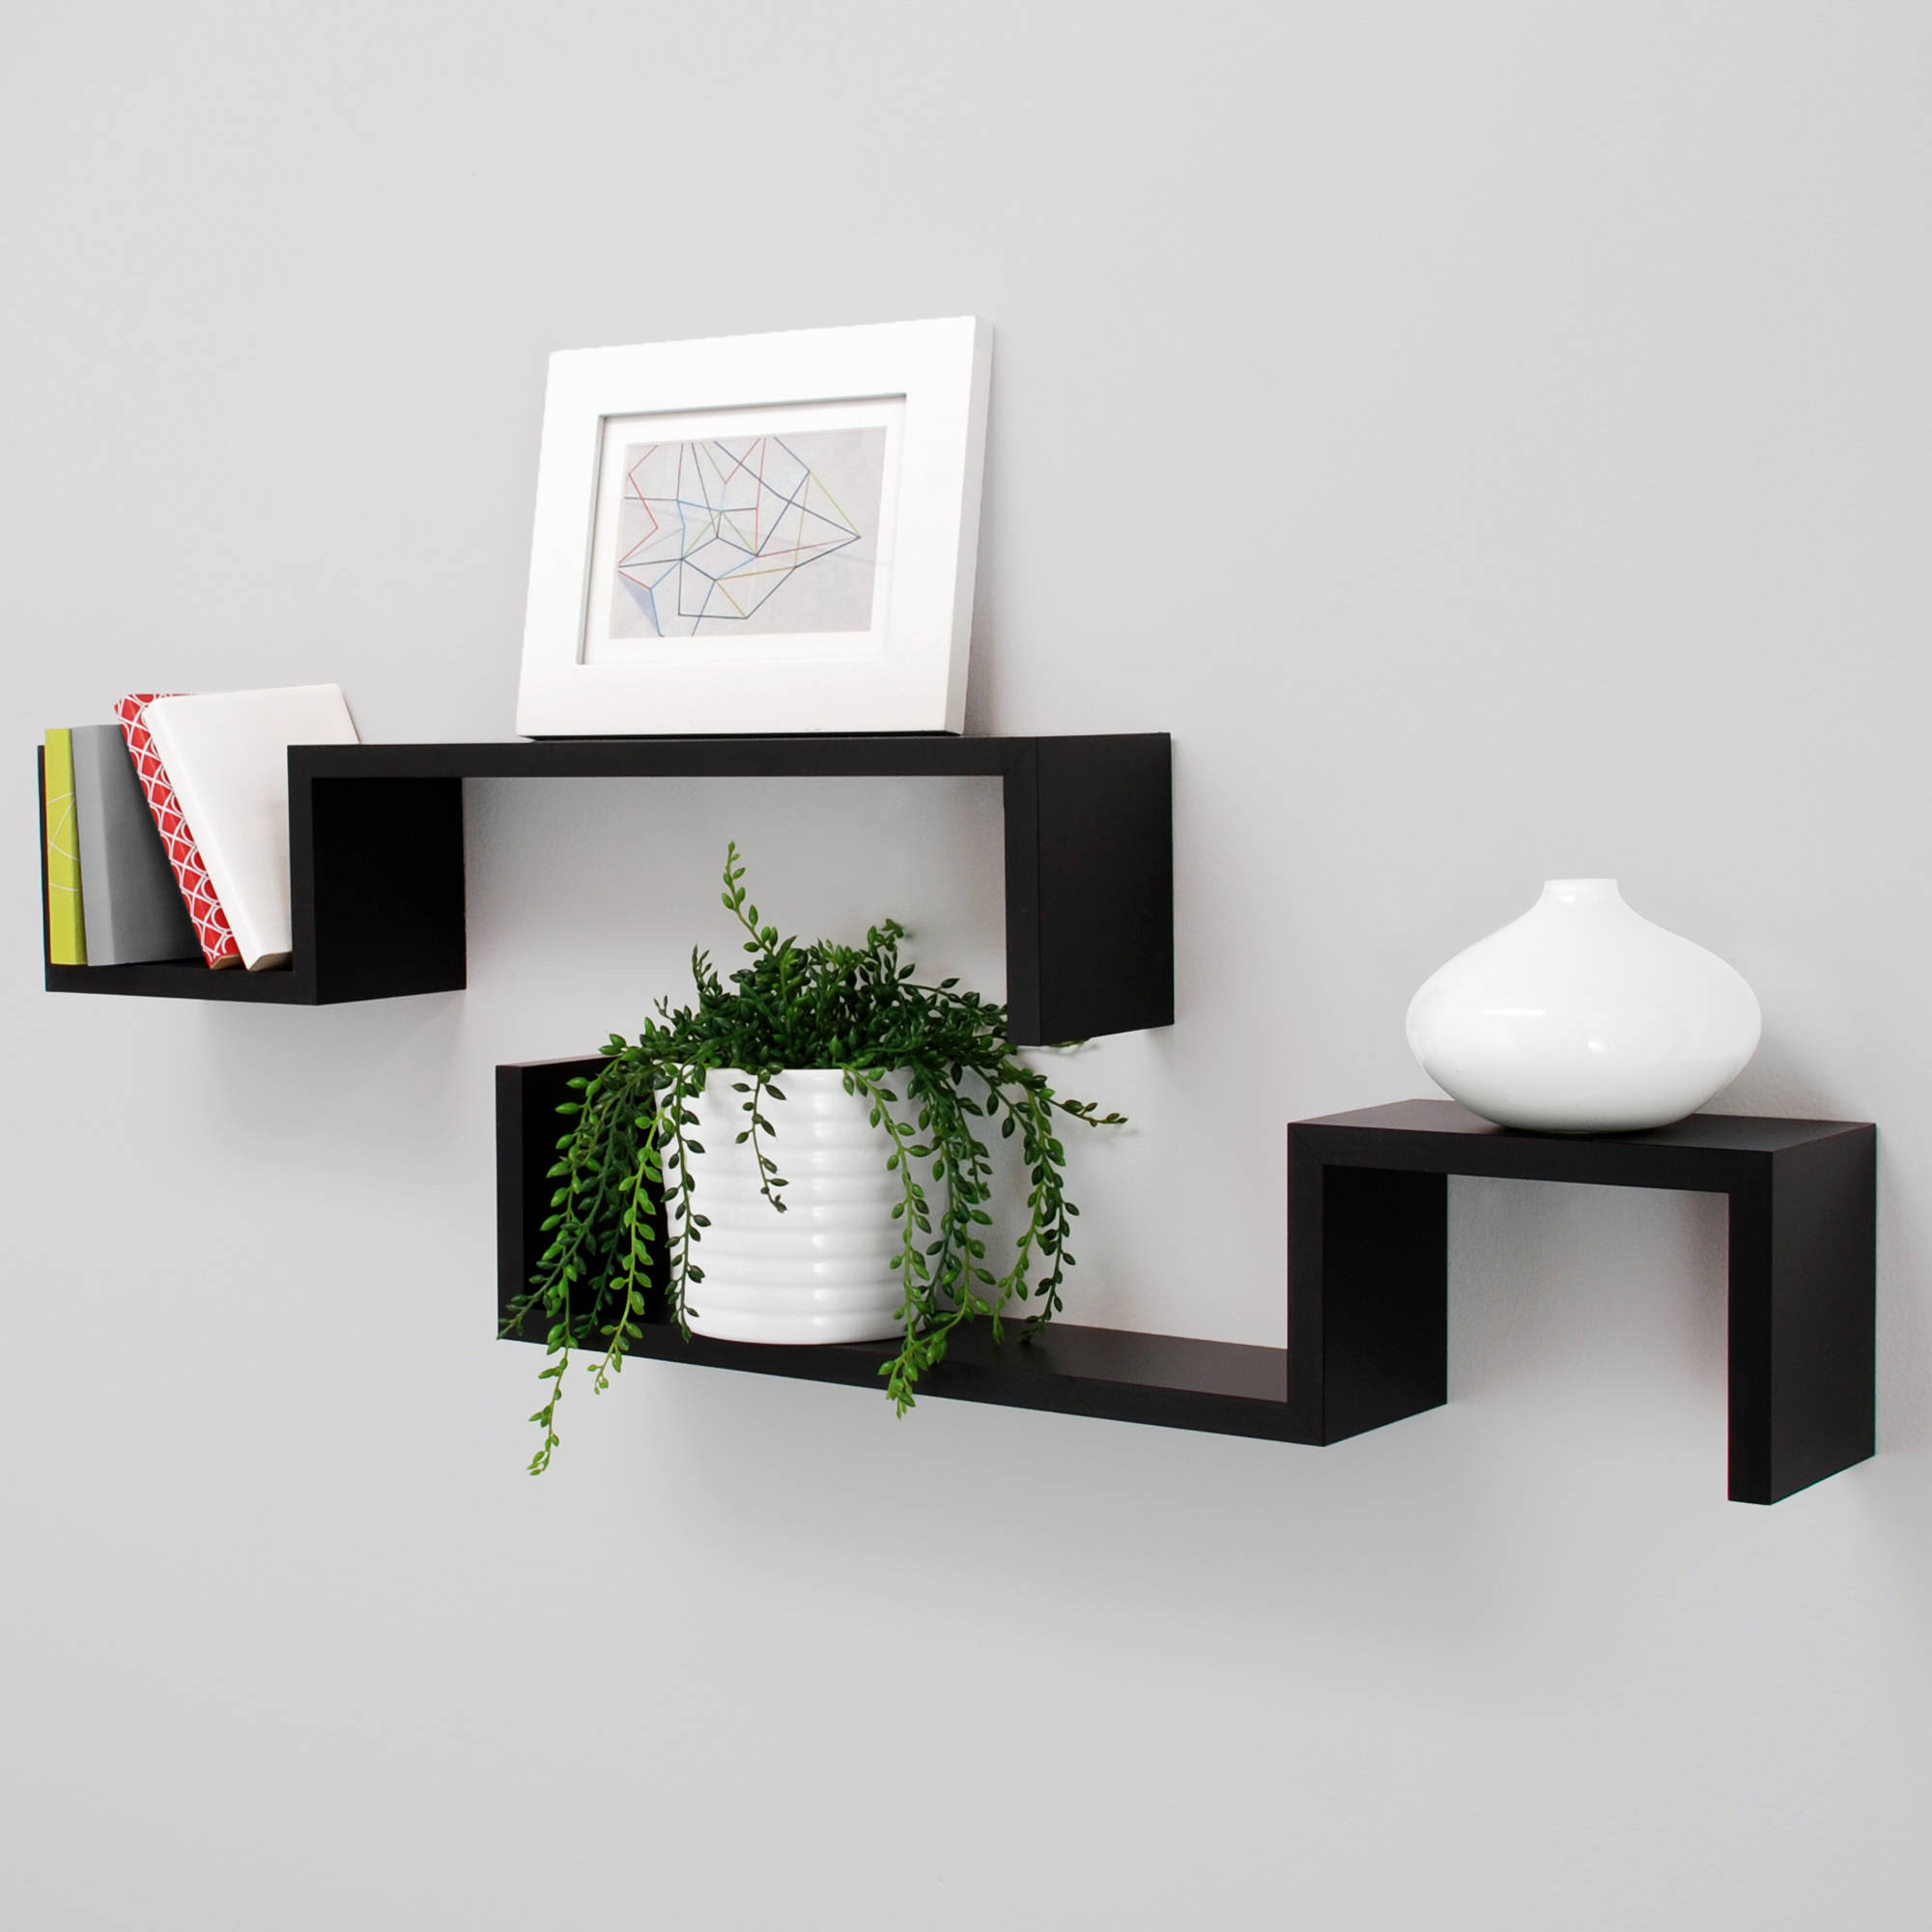 New black finished wood set of 2 wall floating shelf s design 21 home decor ebay - Home decorated set ...